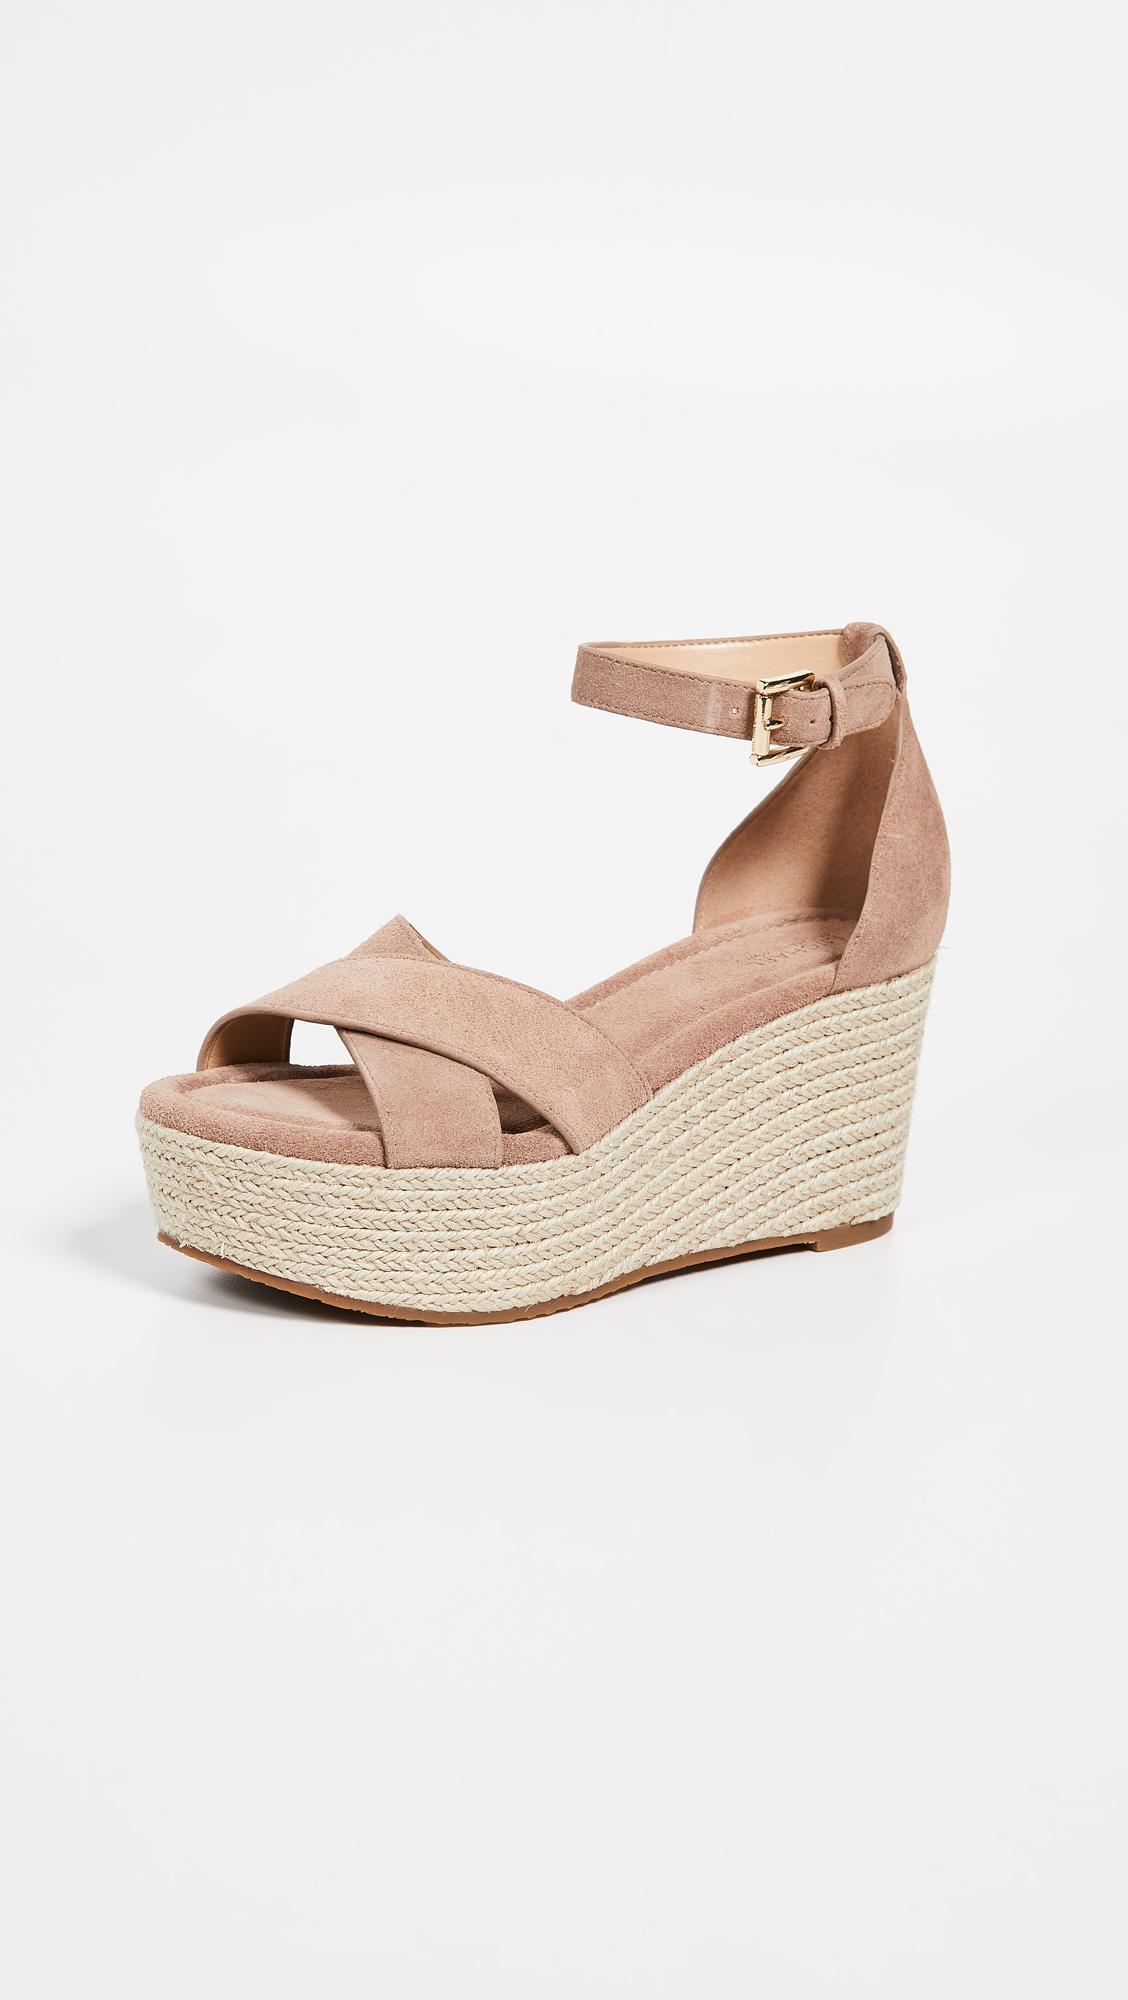 54528065df8 Lyst - MICHAEL Michael Kors Desiree Wedges in Natural